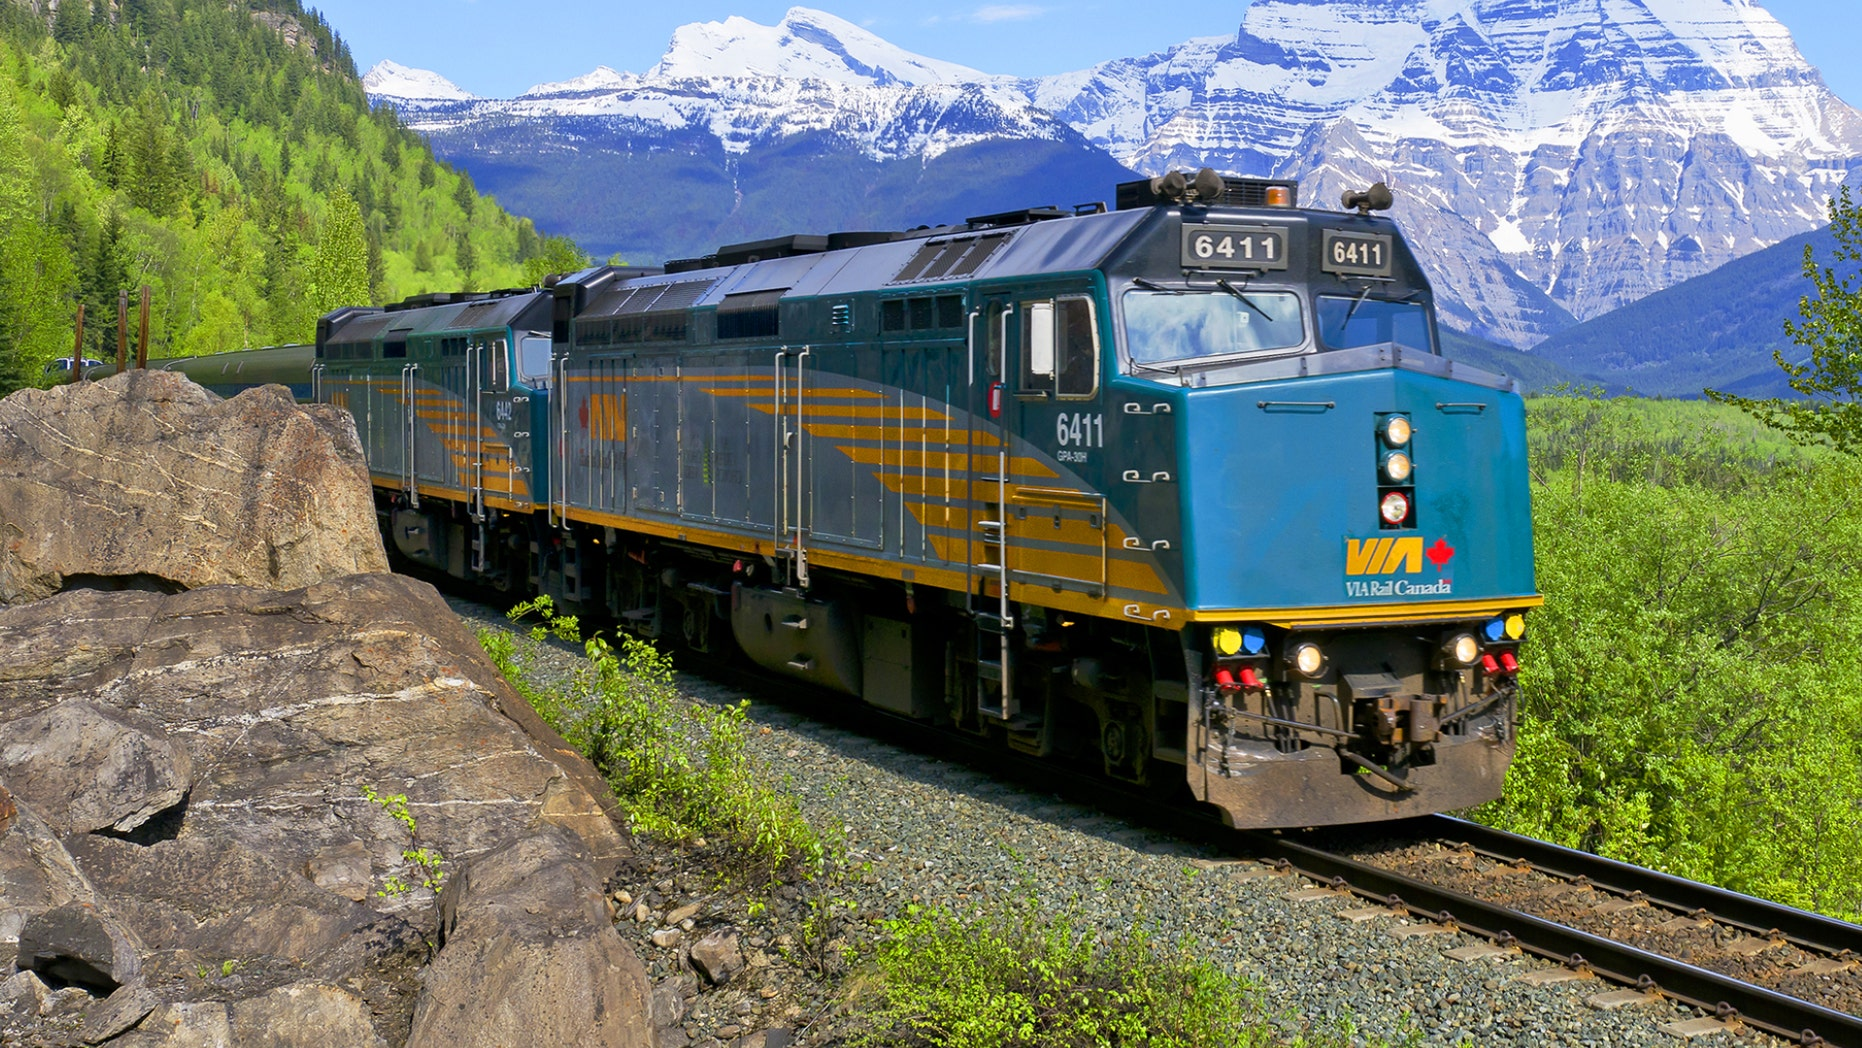 """Trains, like The Canadian, are making a statement in the Smithsonian Channel's second season of """"Mighty Trains."""""""